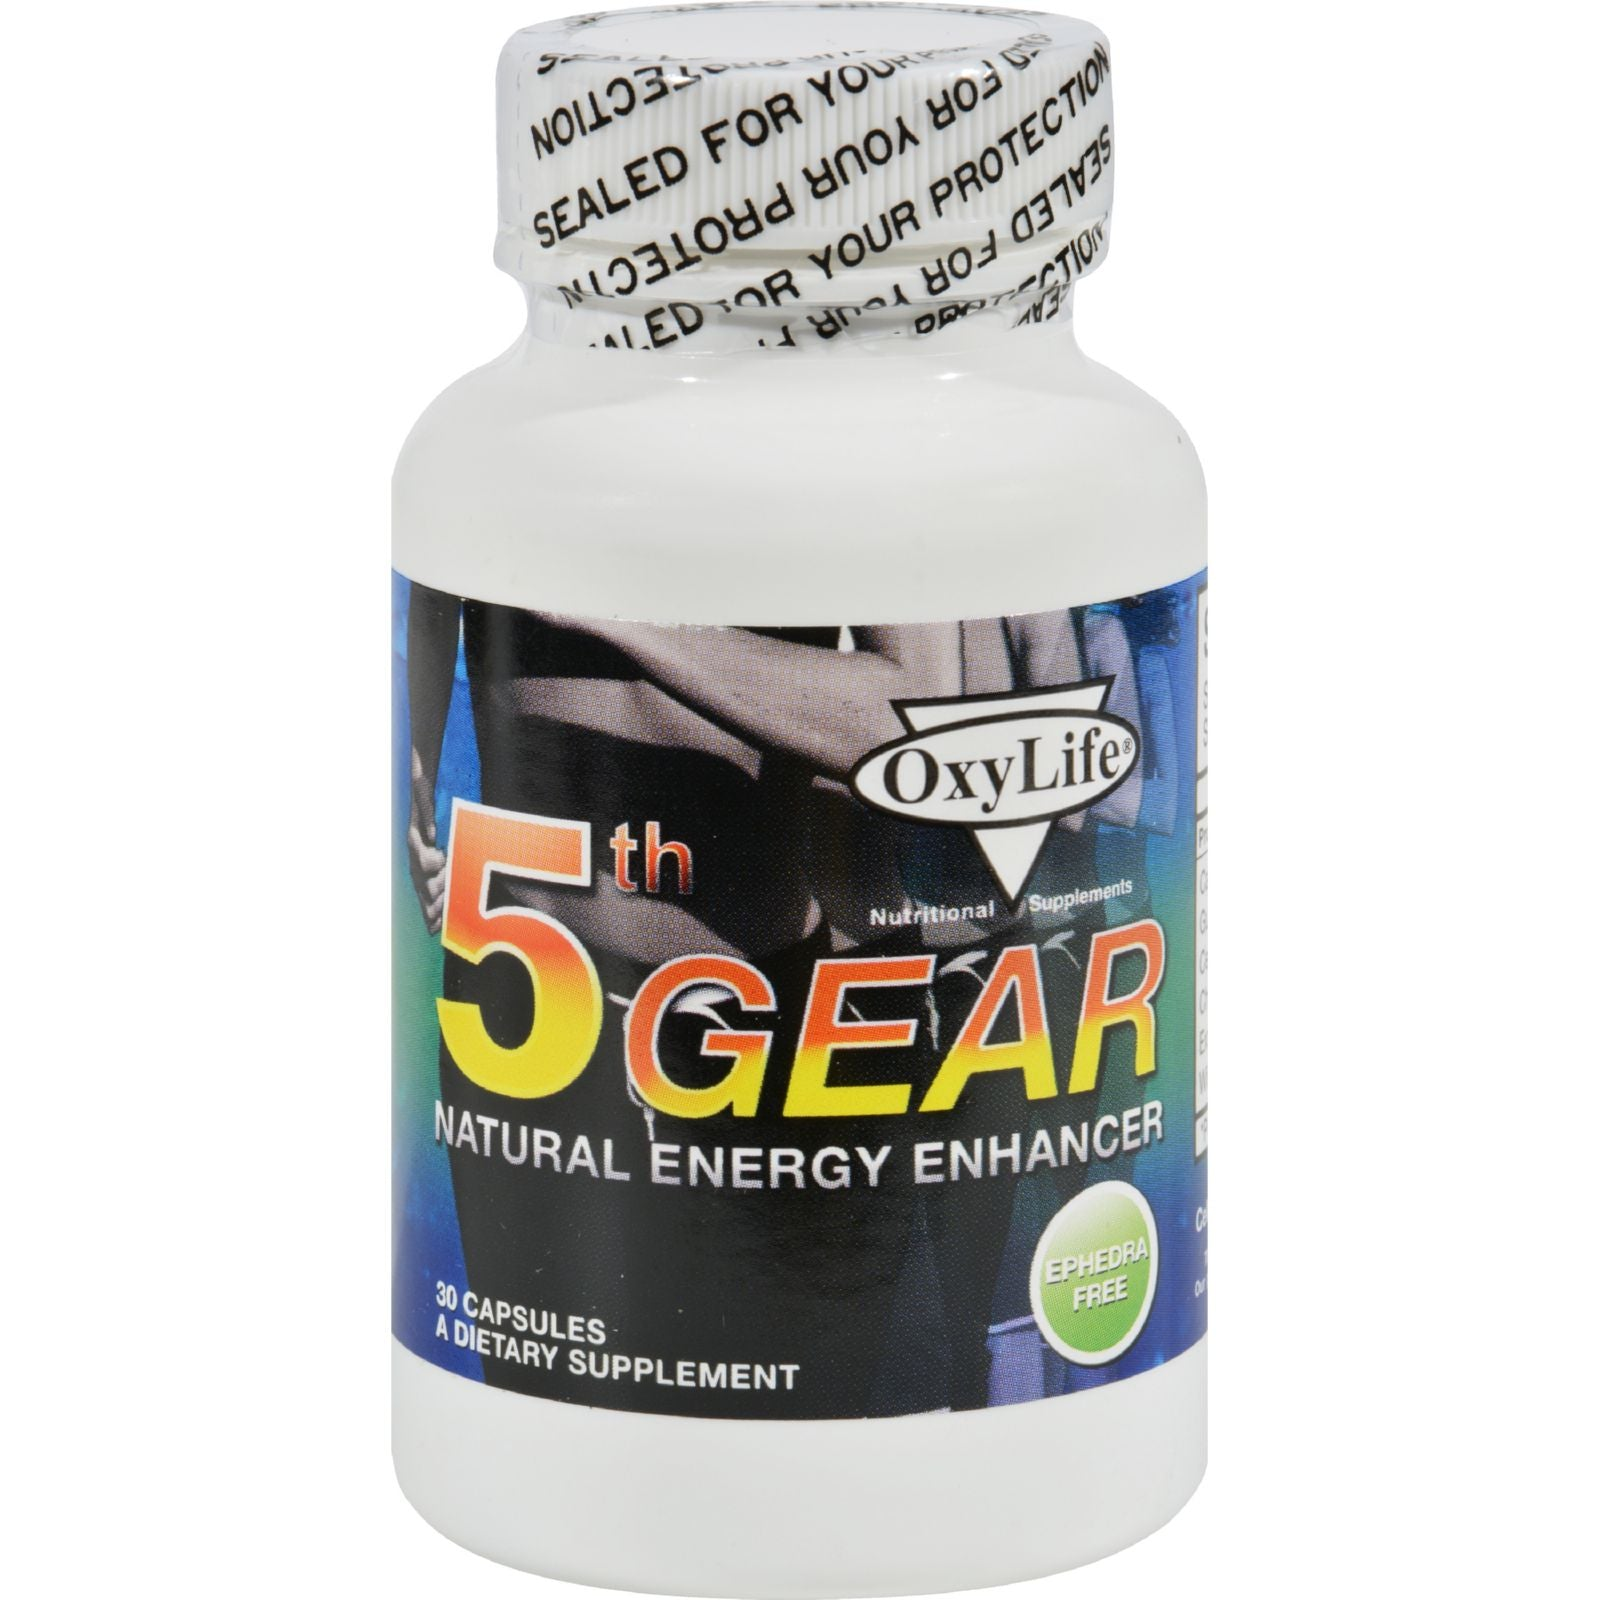 Oxylife 5th Gear - 30 Capsules